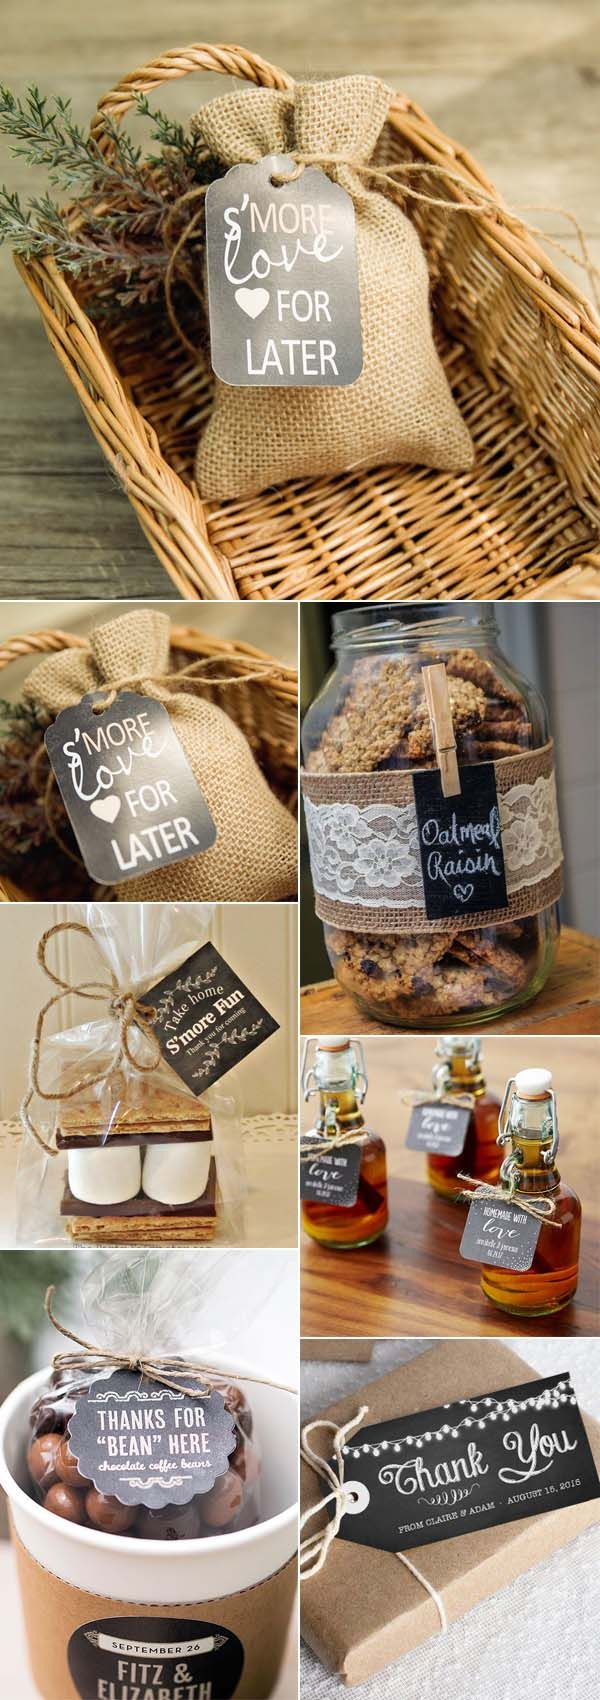 chalkboard wedding favor tag ideas